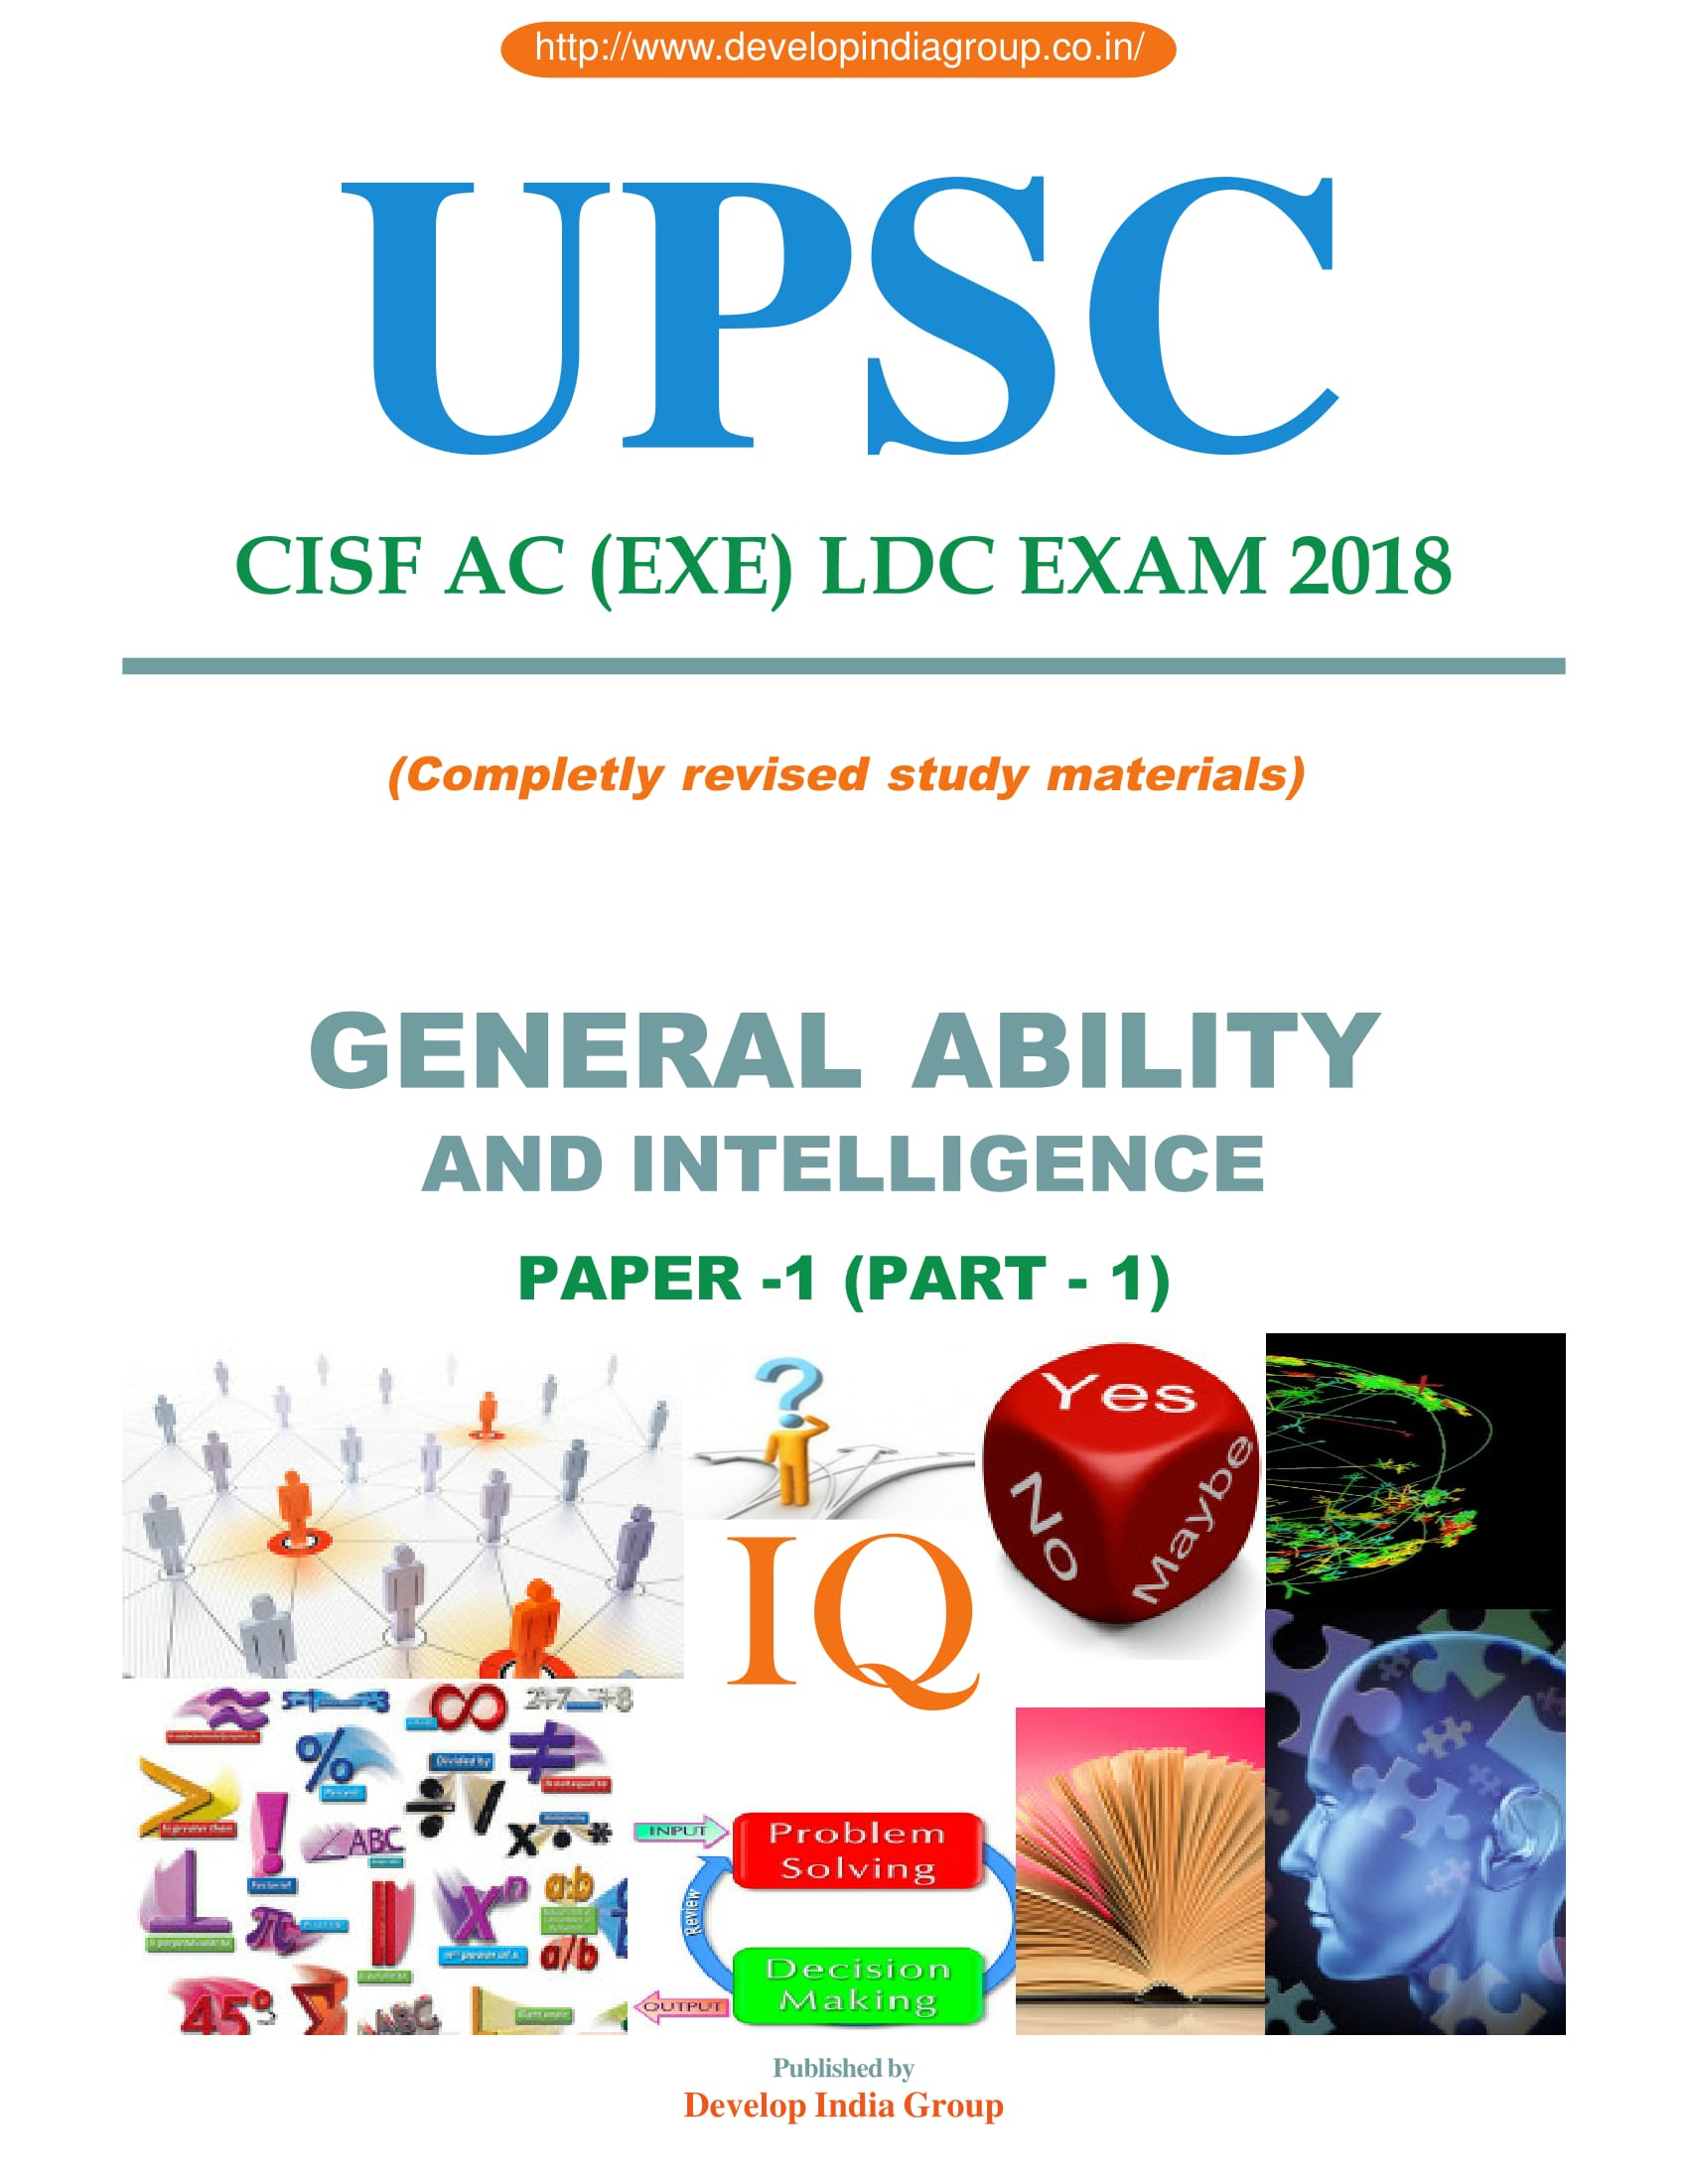 CISF AC (EXE) LDCE Exam 2019 | Develop India Group